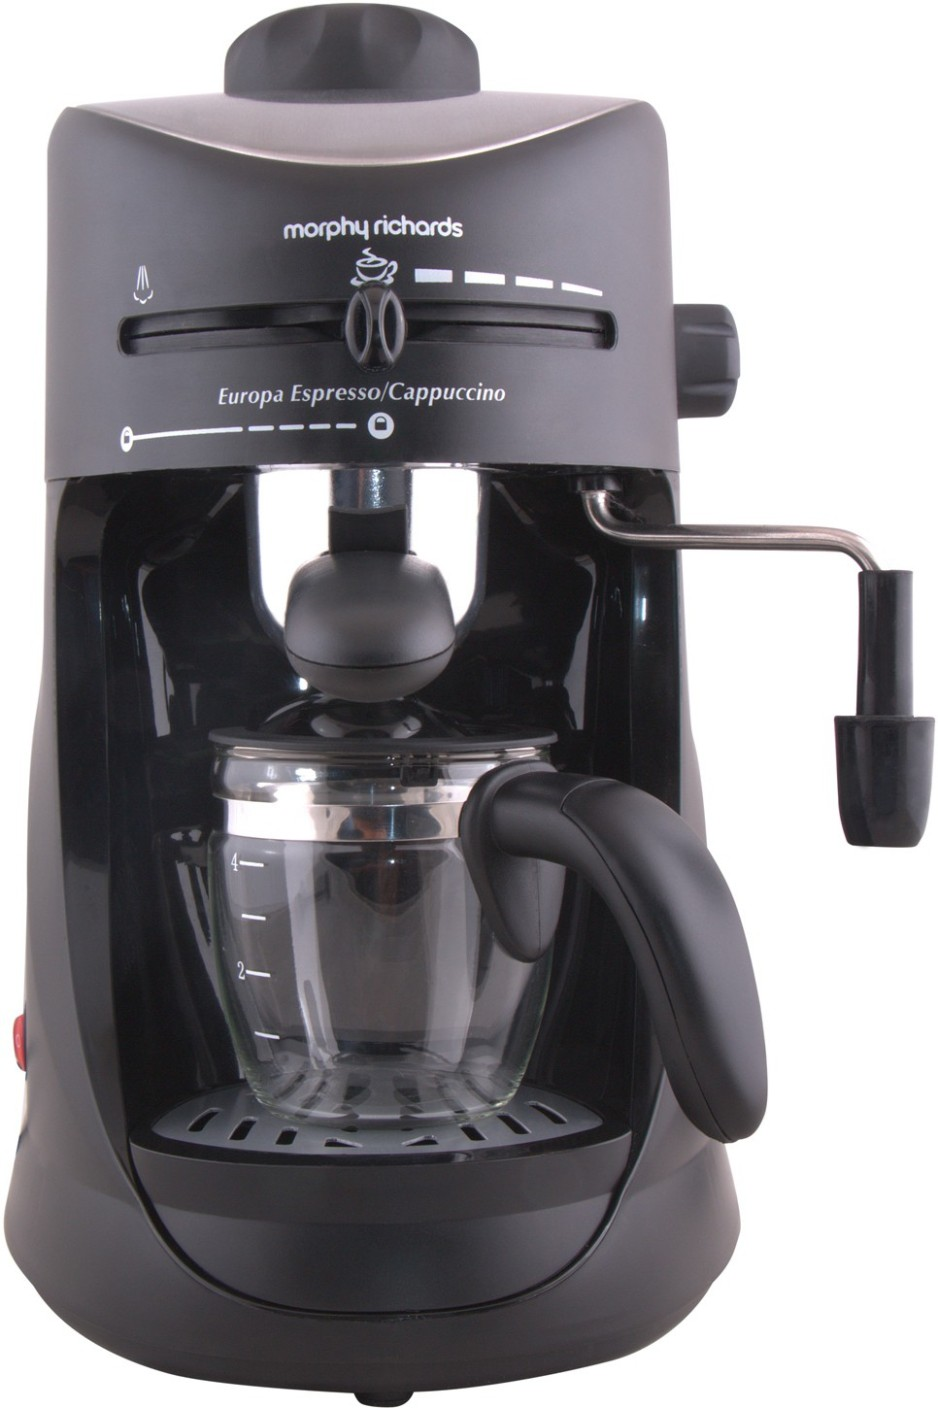 Morphy Richards Purple Coffee Maker : Morphy Richards Europa Espresso / Cappuccino 4 Cups Coffee Maker Price in India - Buy Morphy ...